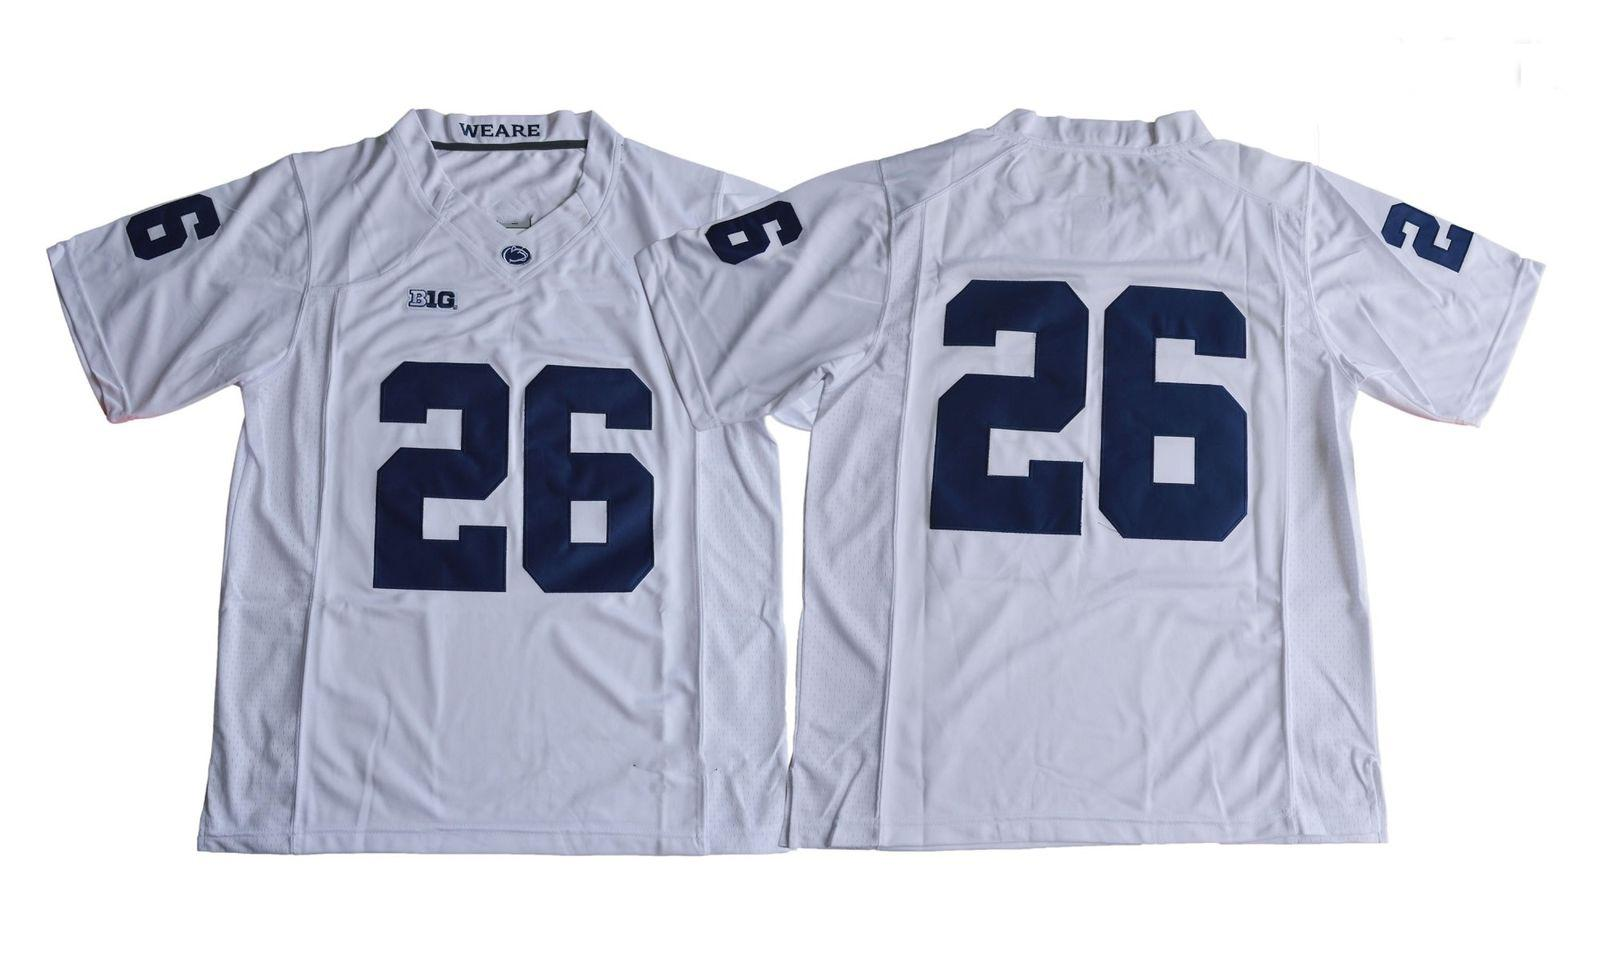 2665ee206 2019 Cheap Custom Penn State Nittany Lions Saquon Barkley 26 Football Jersey  White Stitched Customize Any Number Name MEN WOMEN YOUTH XS 5XL From ...